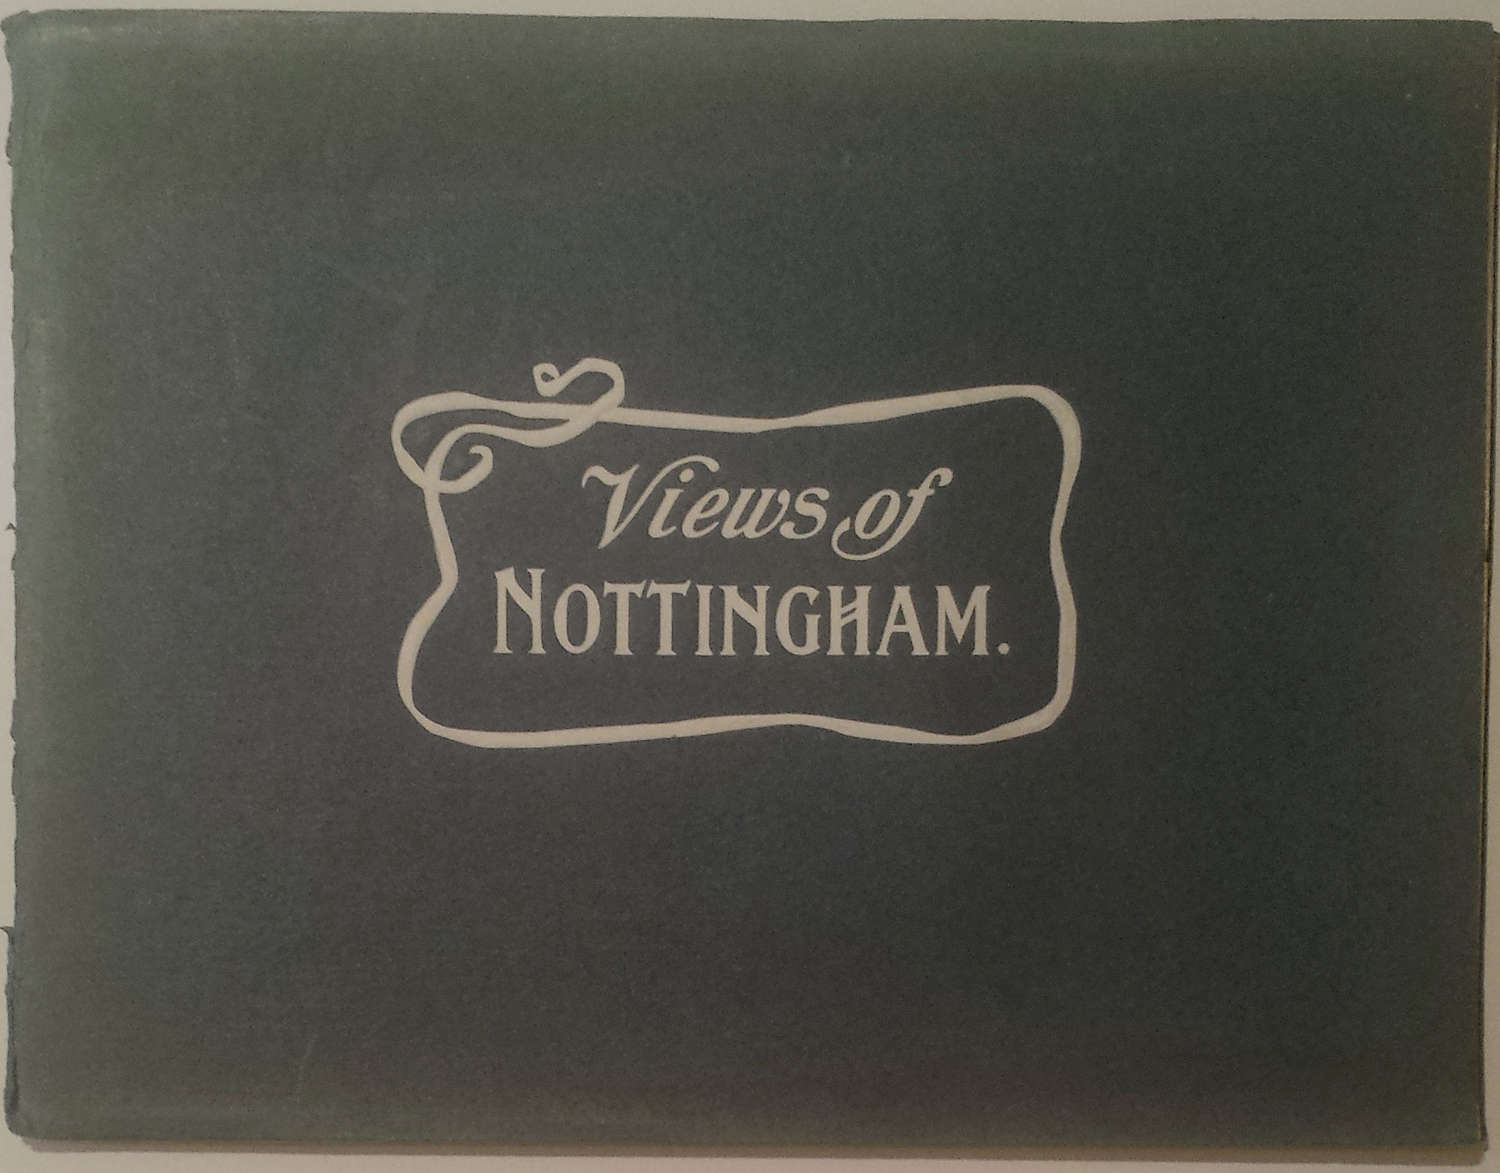 The Album of Coloured Views of Nottingham